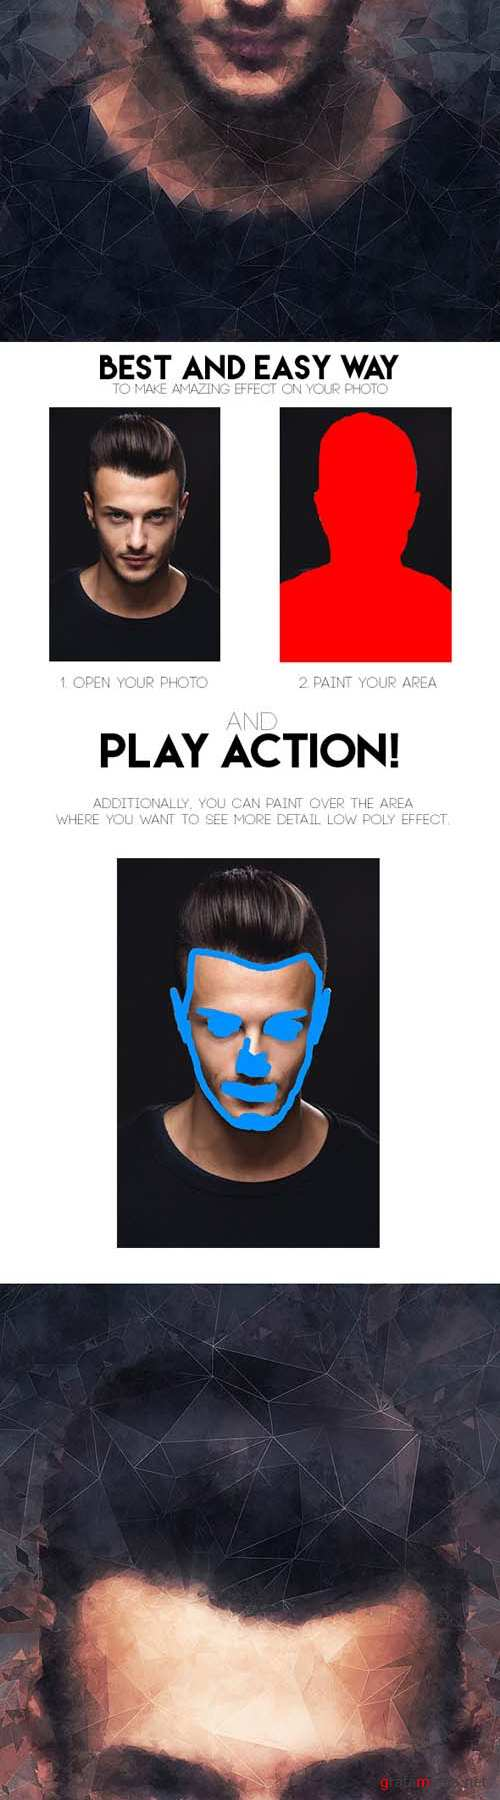 Low Poly Art Photoshop Action 15874035